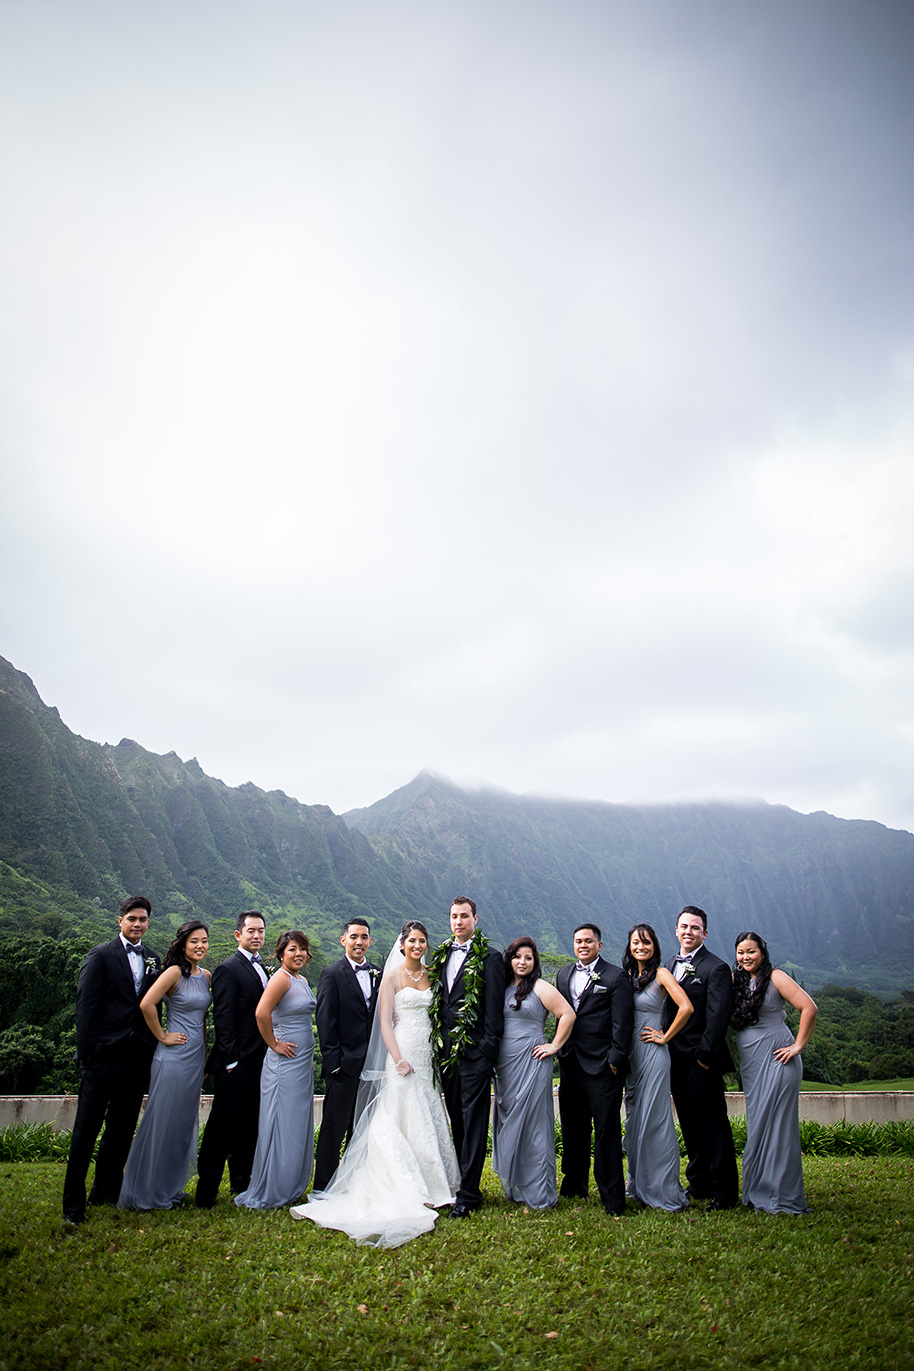 Koolau-Ballrooms-Wedding-041116-9.jpg